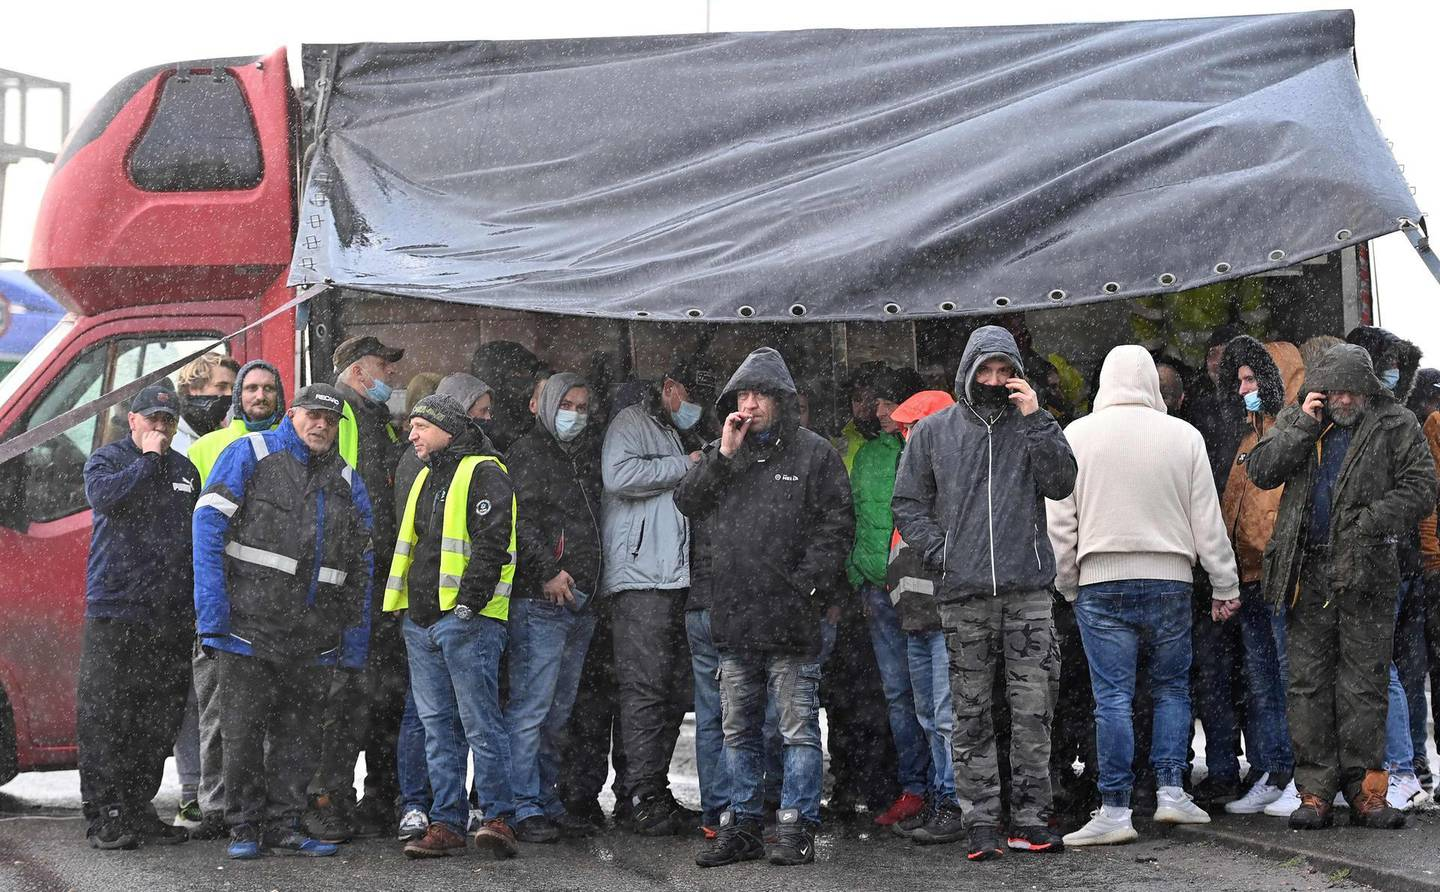 Drivers shelter from the rain by a lorry as they block the road by the entrance to the port in Dover, in Kent, south east England on December 23, 2020, as they are not being allowed to enter by police after the UK and France agreed a protocol to reopen the border to accompanied freight arriving in France from the UK.  France and Britain reopened cross-border travel after a snap 48-hour ban to curb the spread of a new coronavirus variant threatened UK supply chains. Accompanied frieght will now be allowed to cross the channel from the port of Dover but all lorry drivers will require a lateral flow test and a negative Covid-19 result before the travel.  / AFP / JUSTIN TALLIS